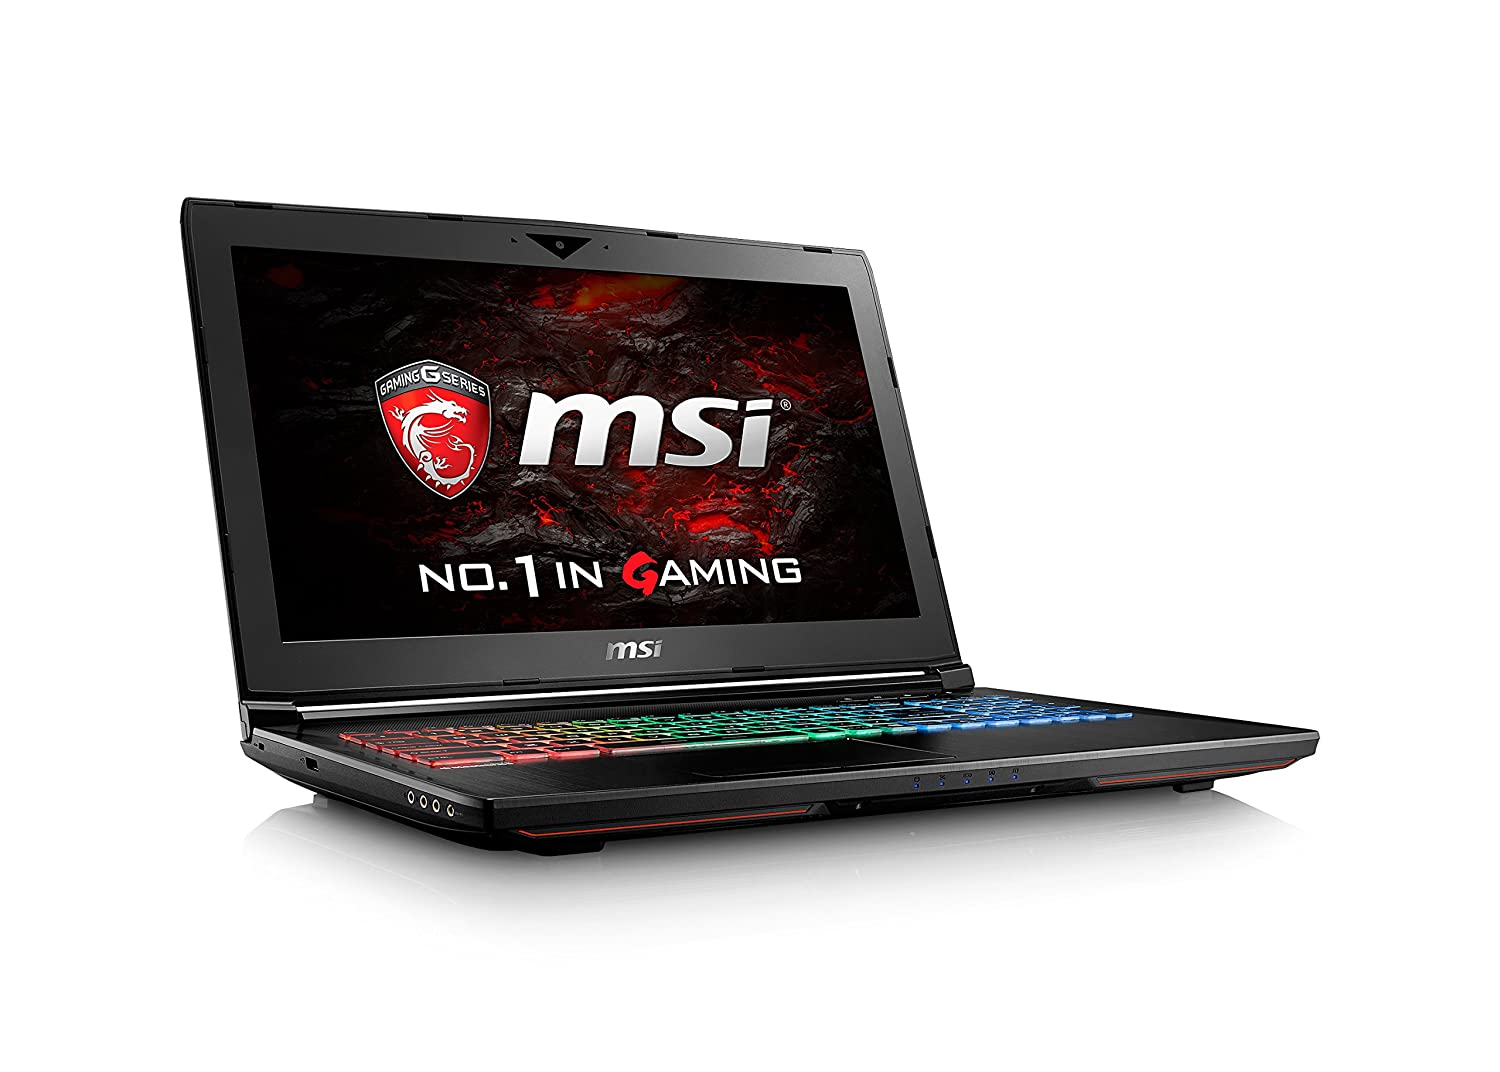 gaming laptop under 1500